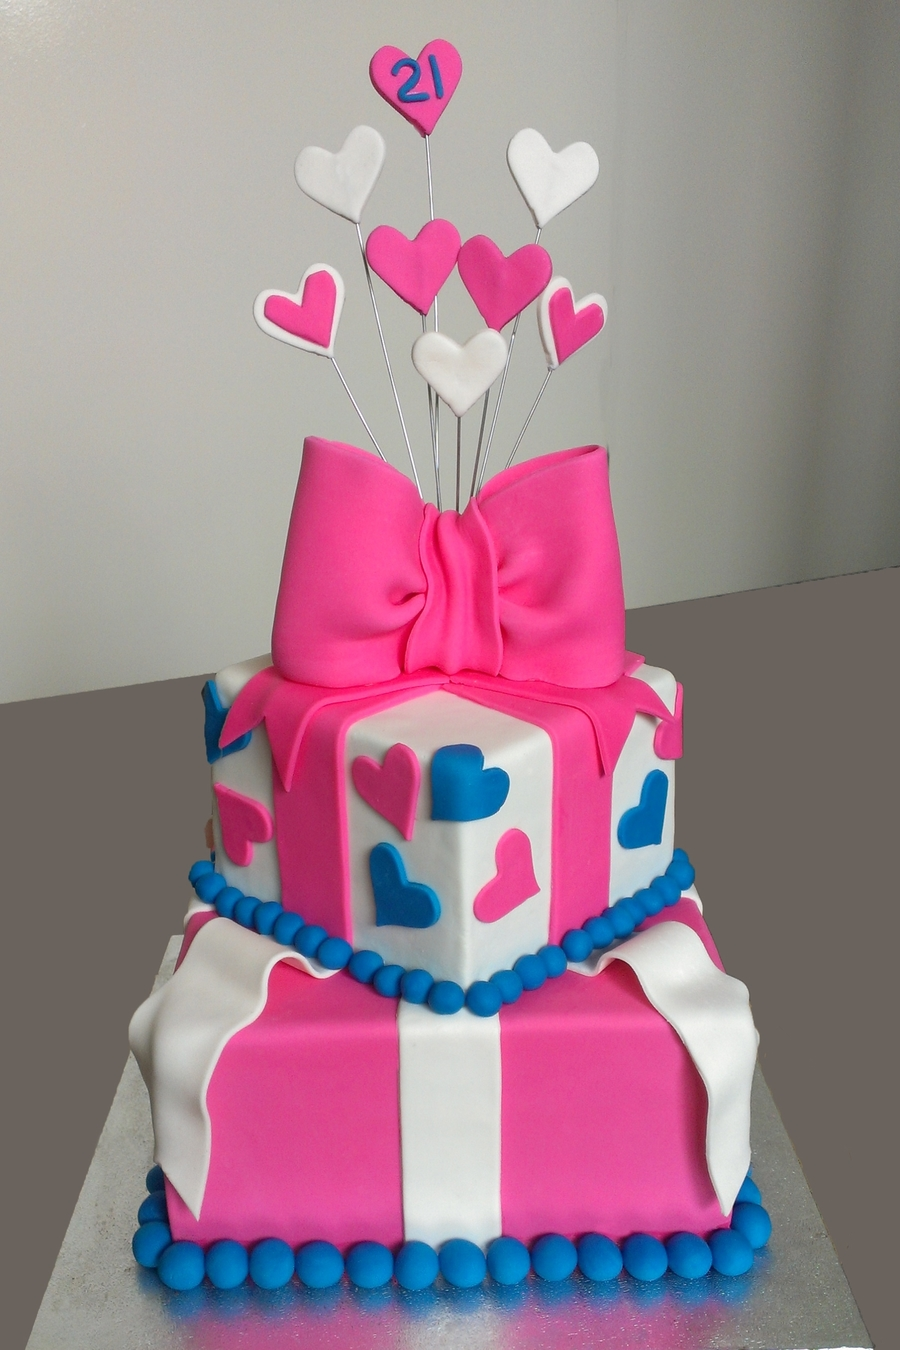 Pink Amp Blue 21st Birthday Cake Cakecentral Com